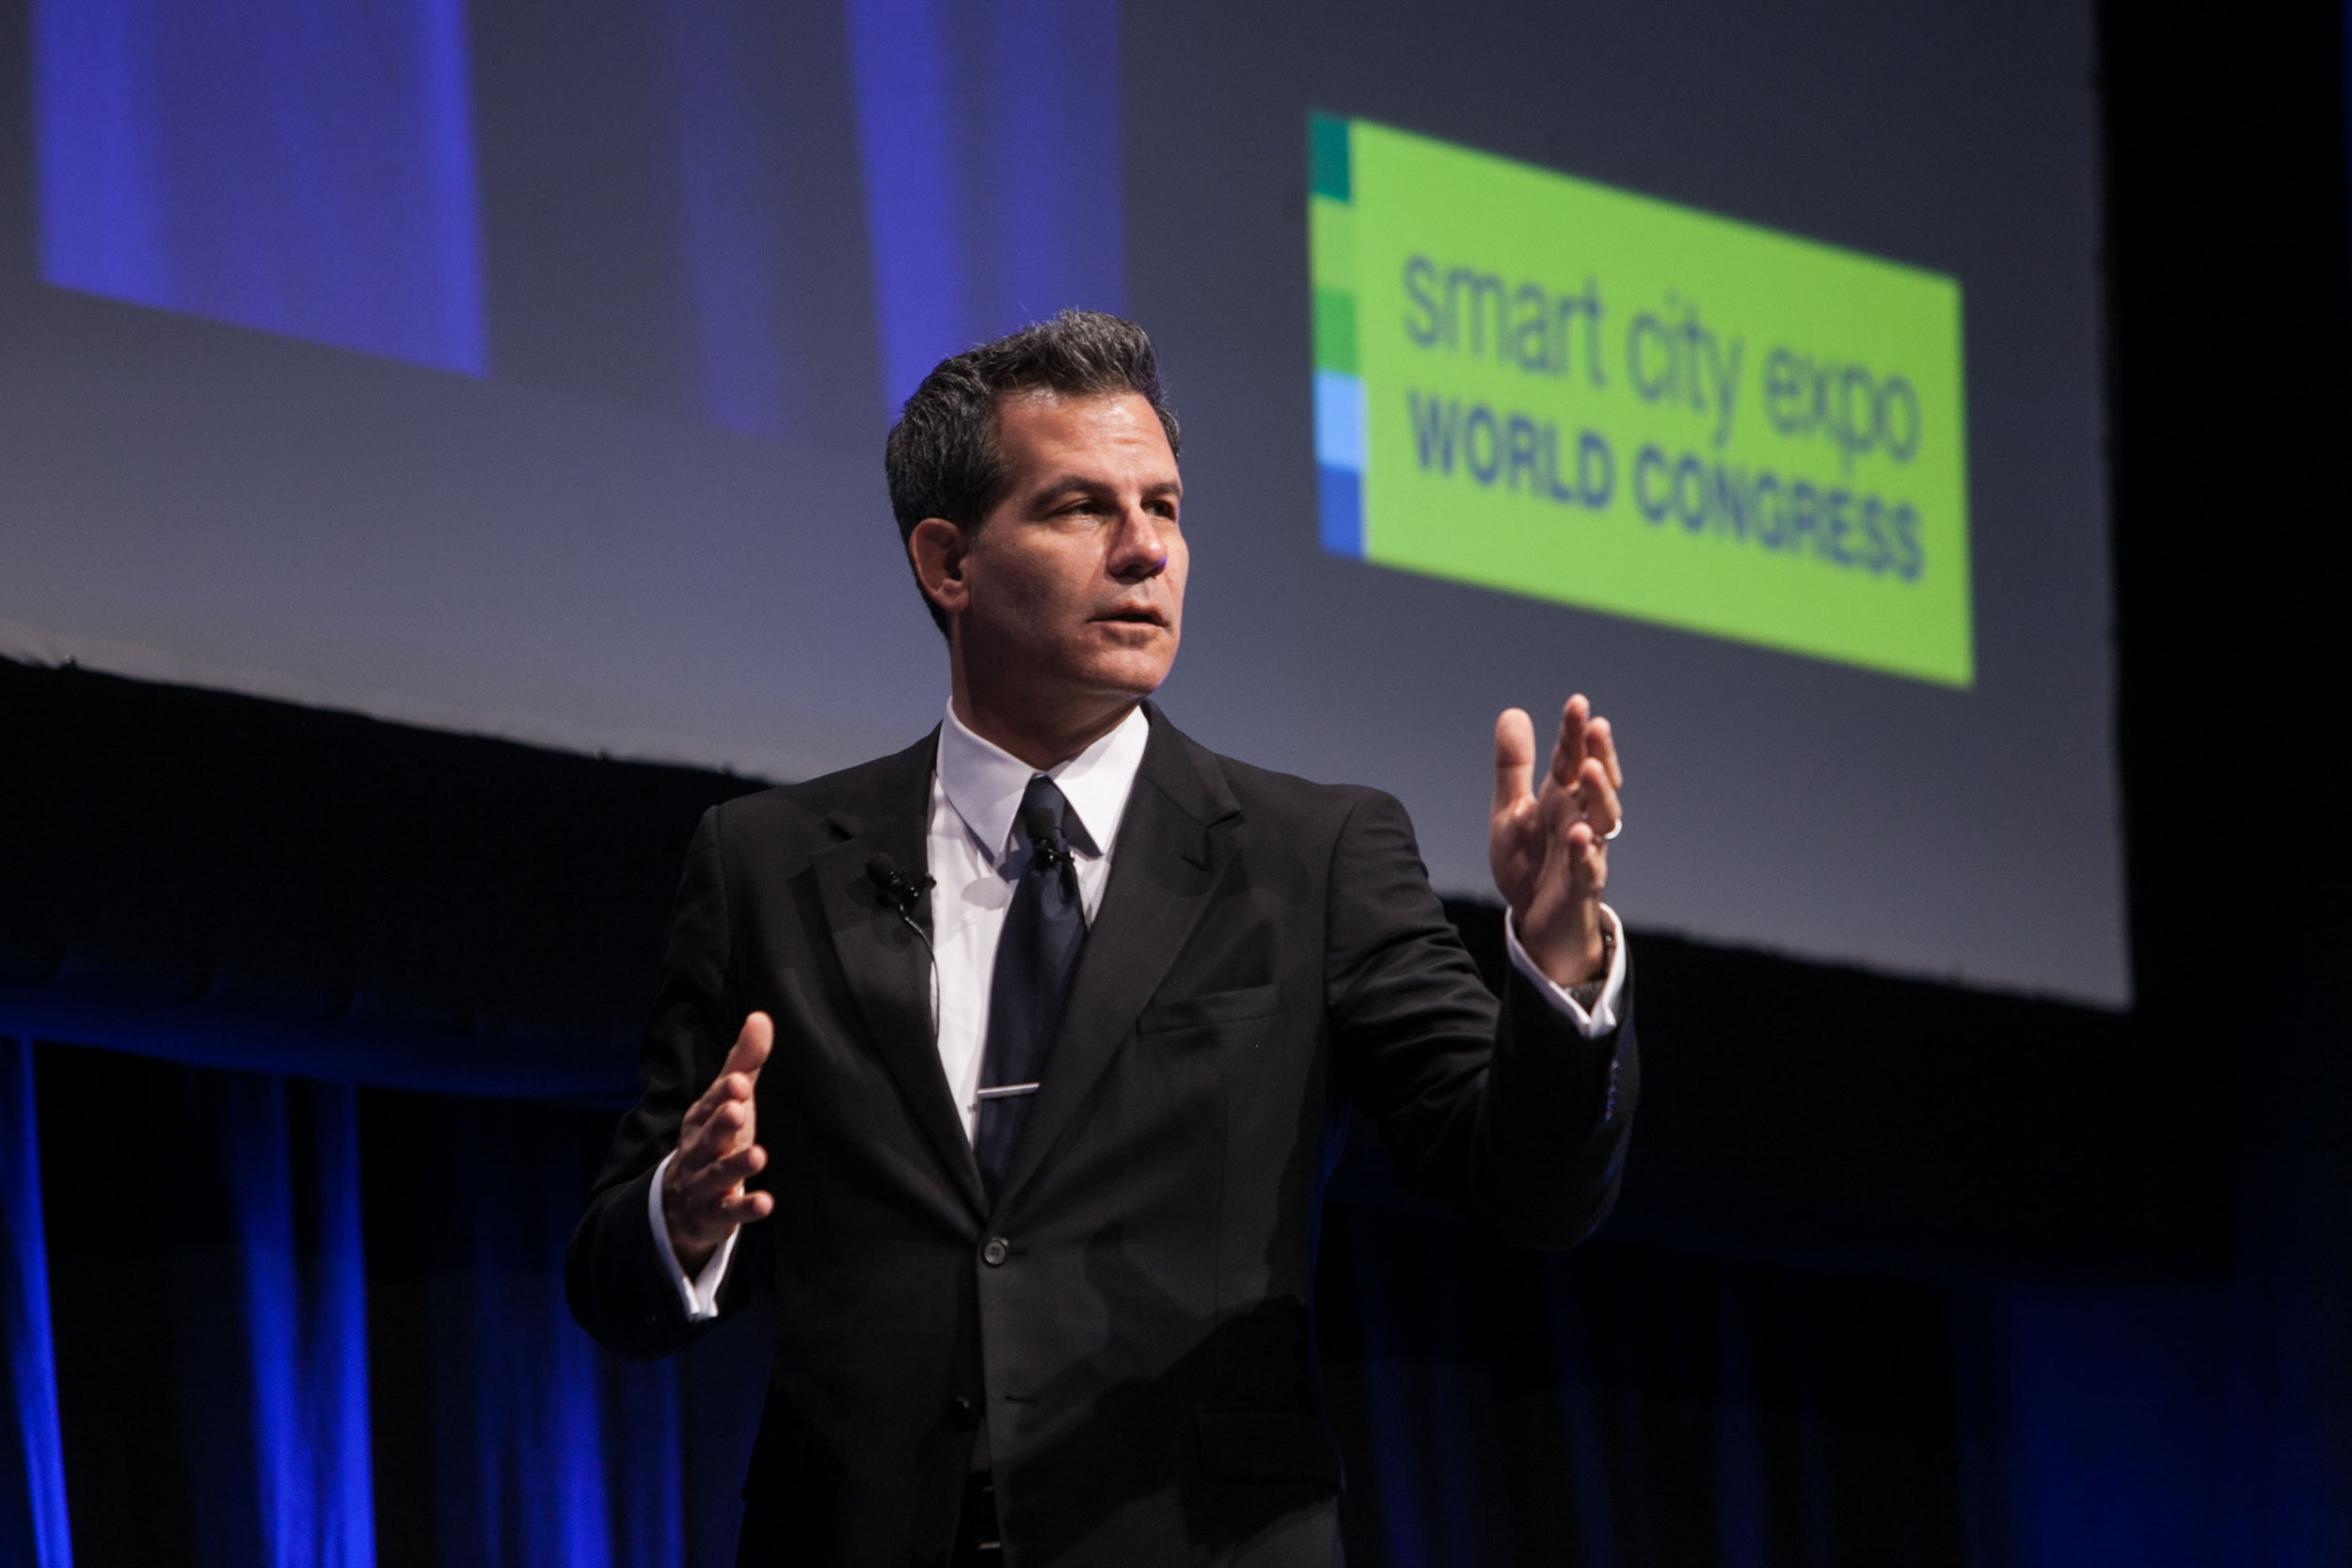 Richard Florida_Smart City Expo World Congress.jpg